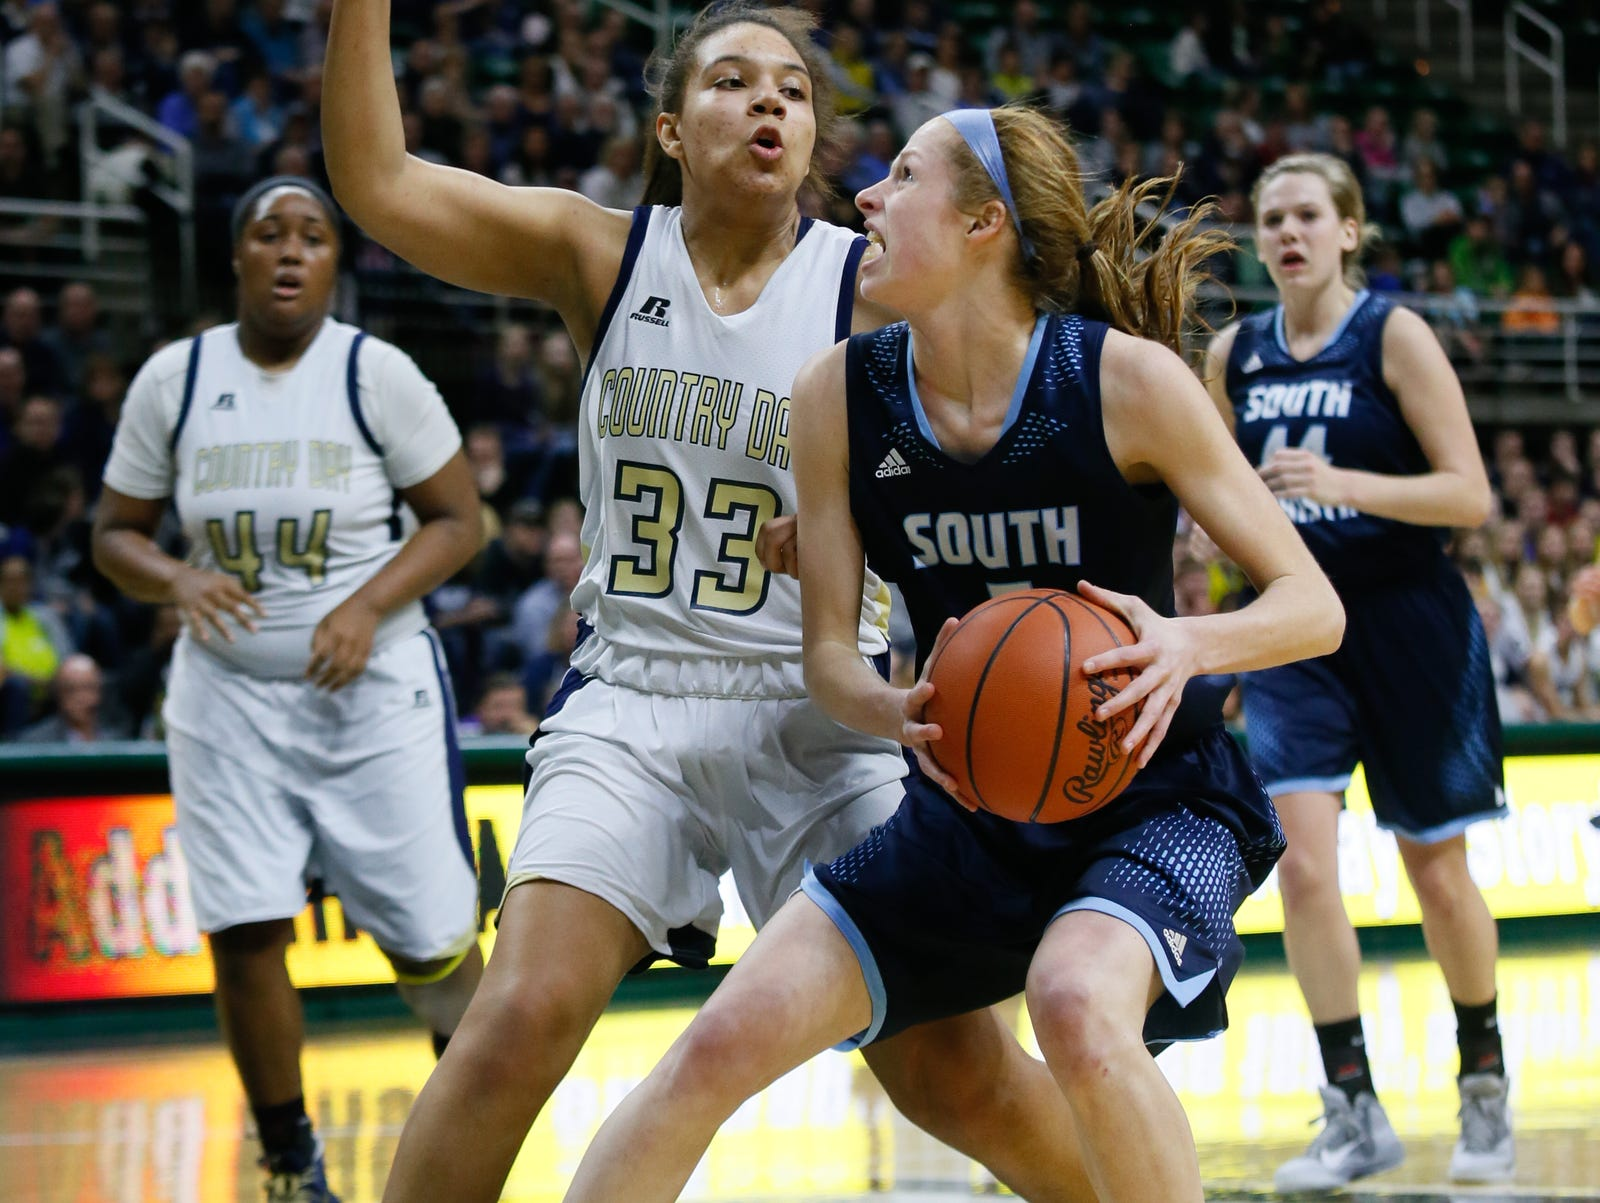 Grand Rapids South Christian's Mariel Bruxvoort goes hard towards the basket against Birmingham Detroit Country Day's Destiny Pitts during South Christian's 57-46 win in the Class B state semifinal Friday in East Lansing.